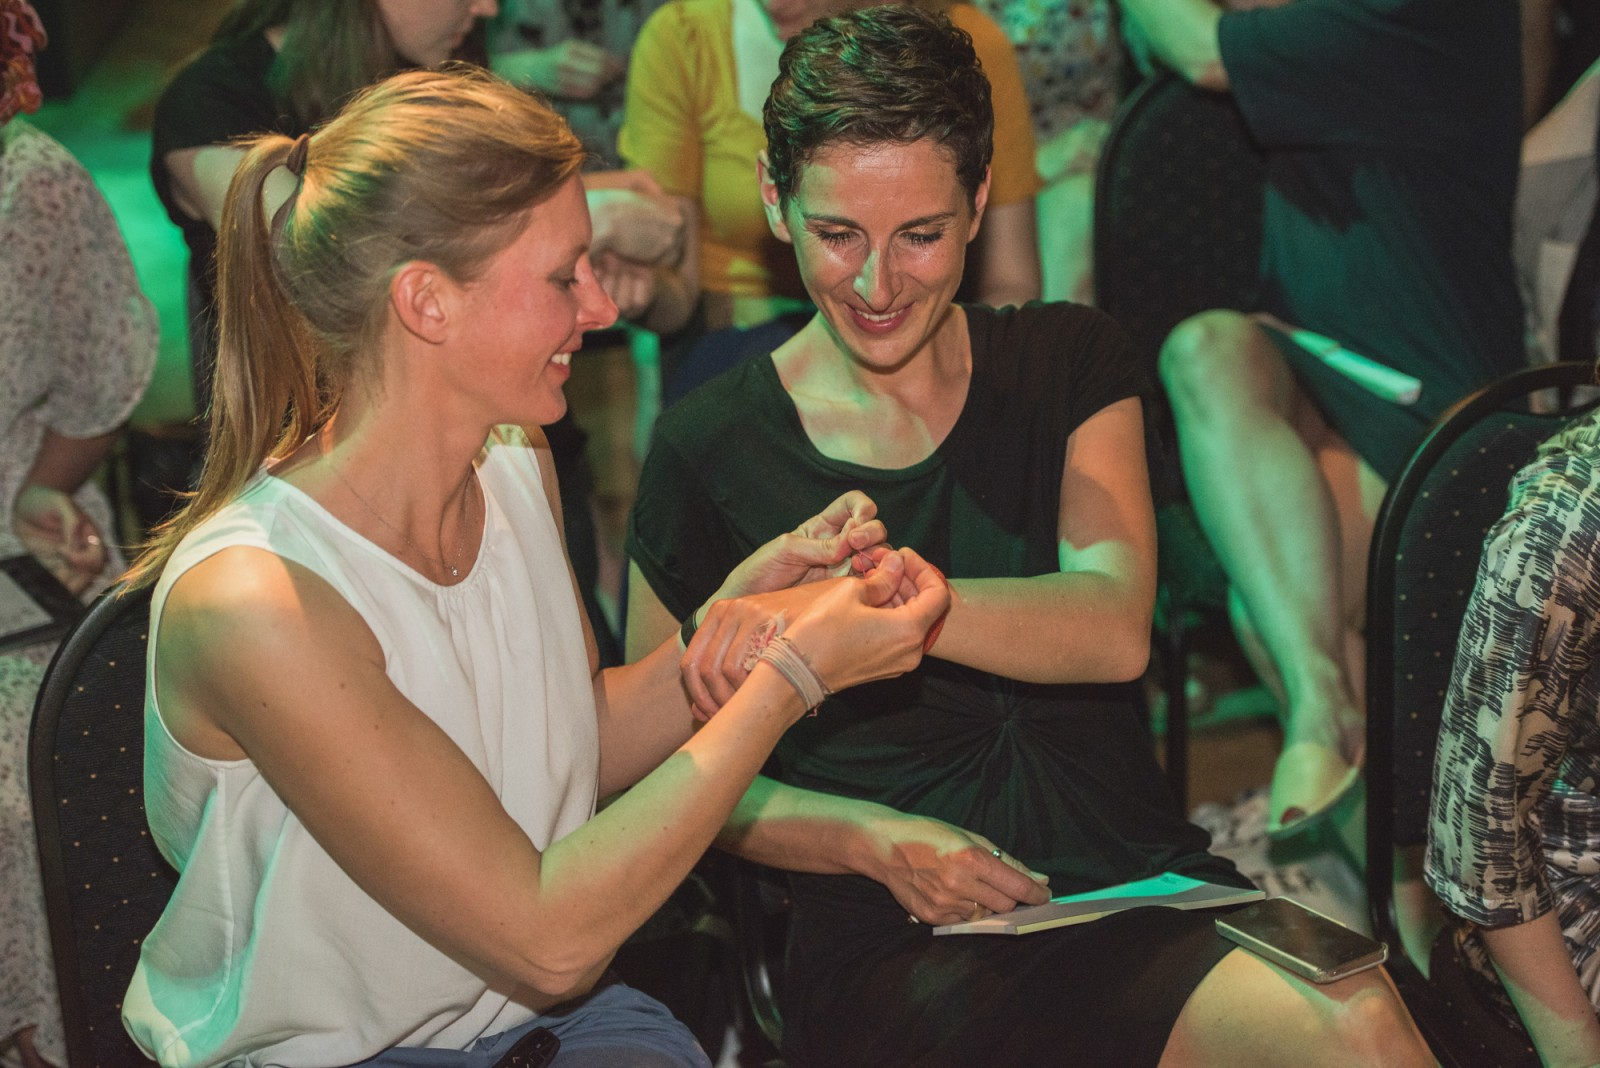 20170529_The_Lovers_Academy_SalonMondaine_16_WEB_RGB_AUSWAHL_DarshanaBorges_bearbeitet_21